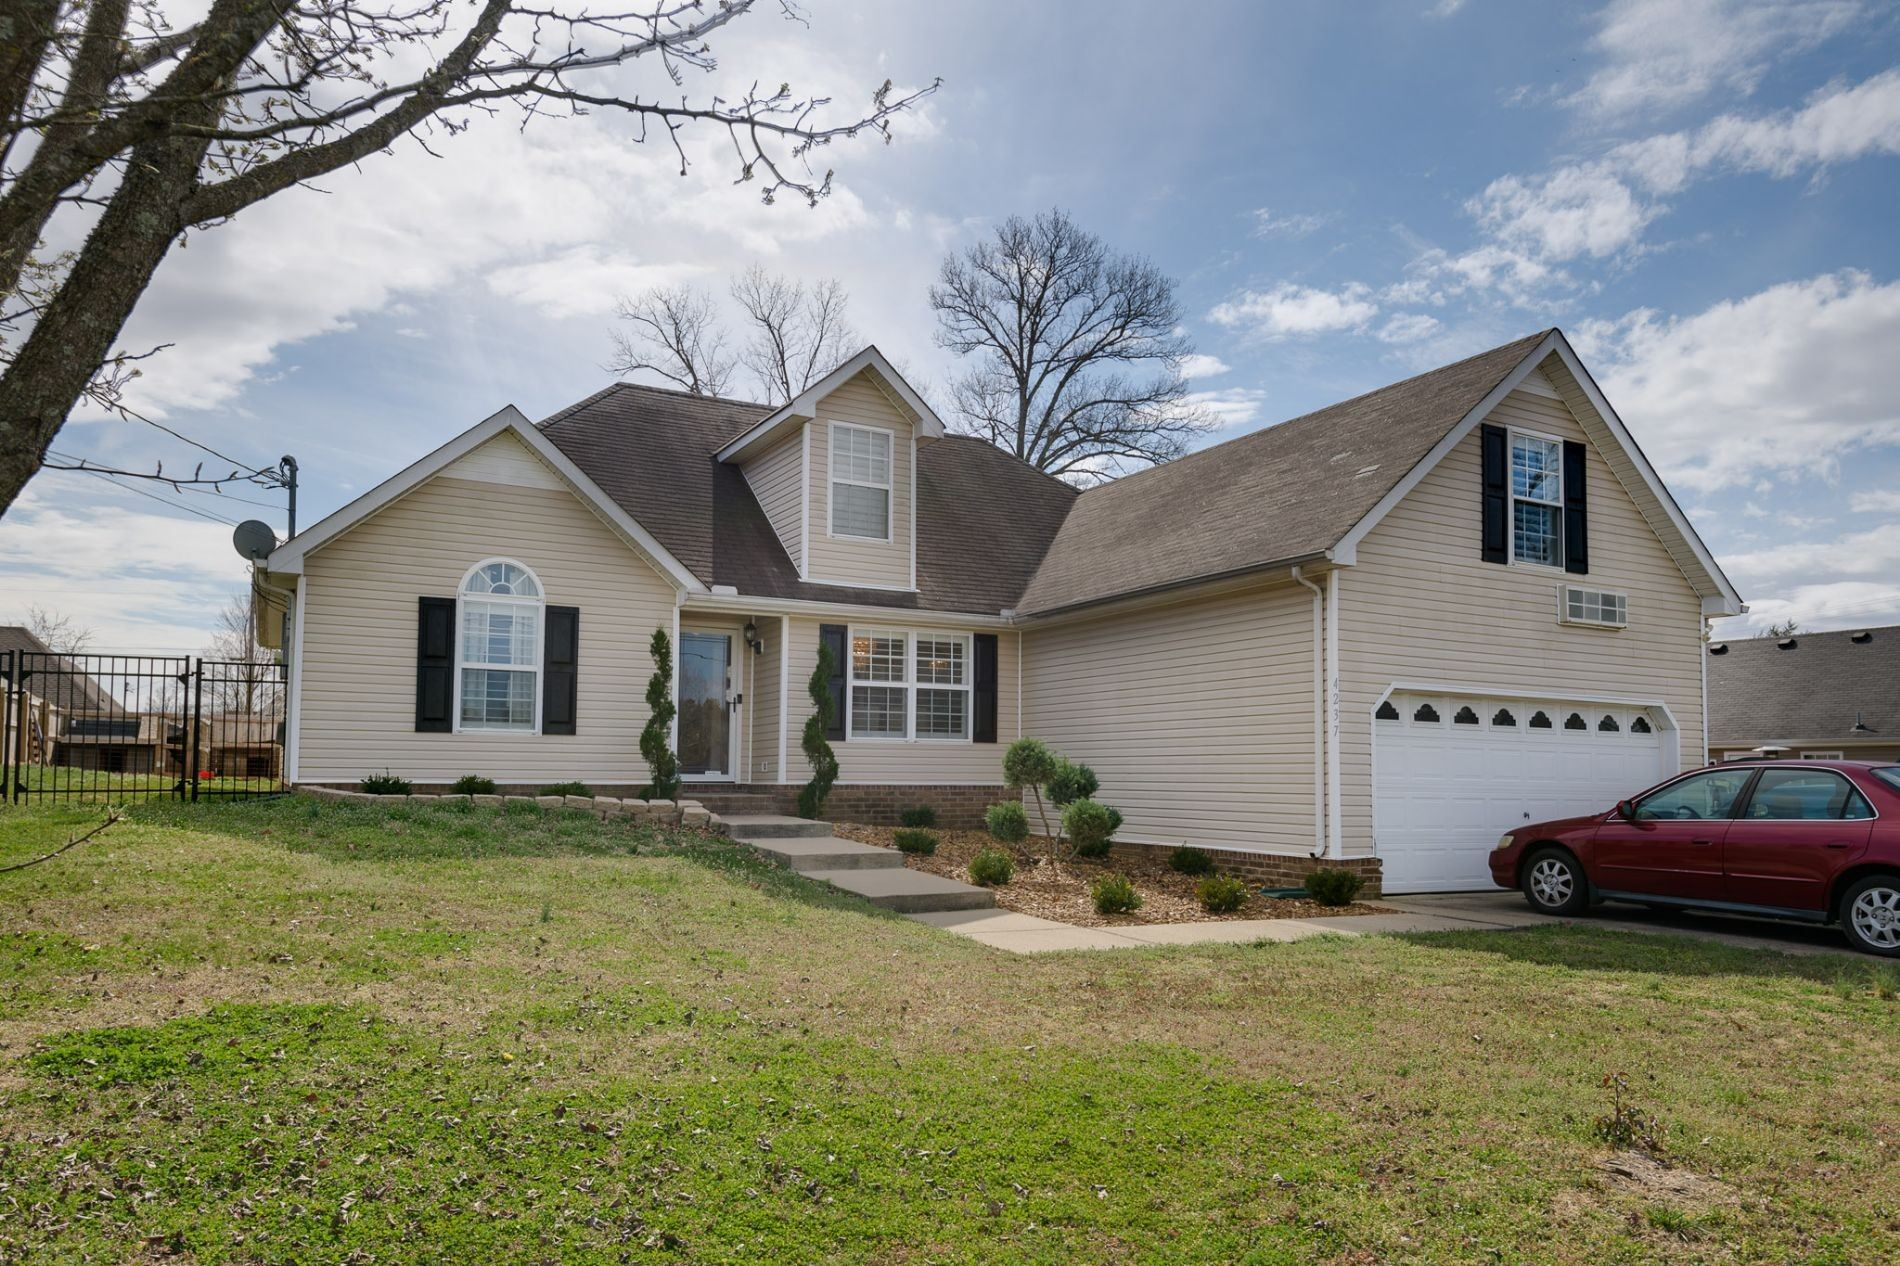 4237 Nandina Ct, Murfreesboro, TN 37129 - MLS#: 2243085